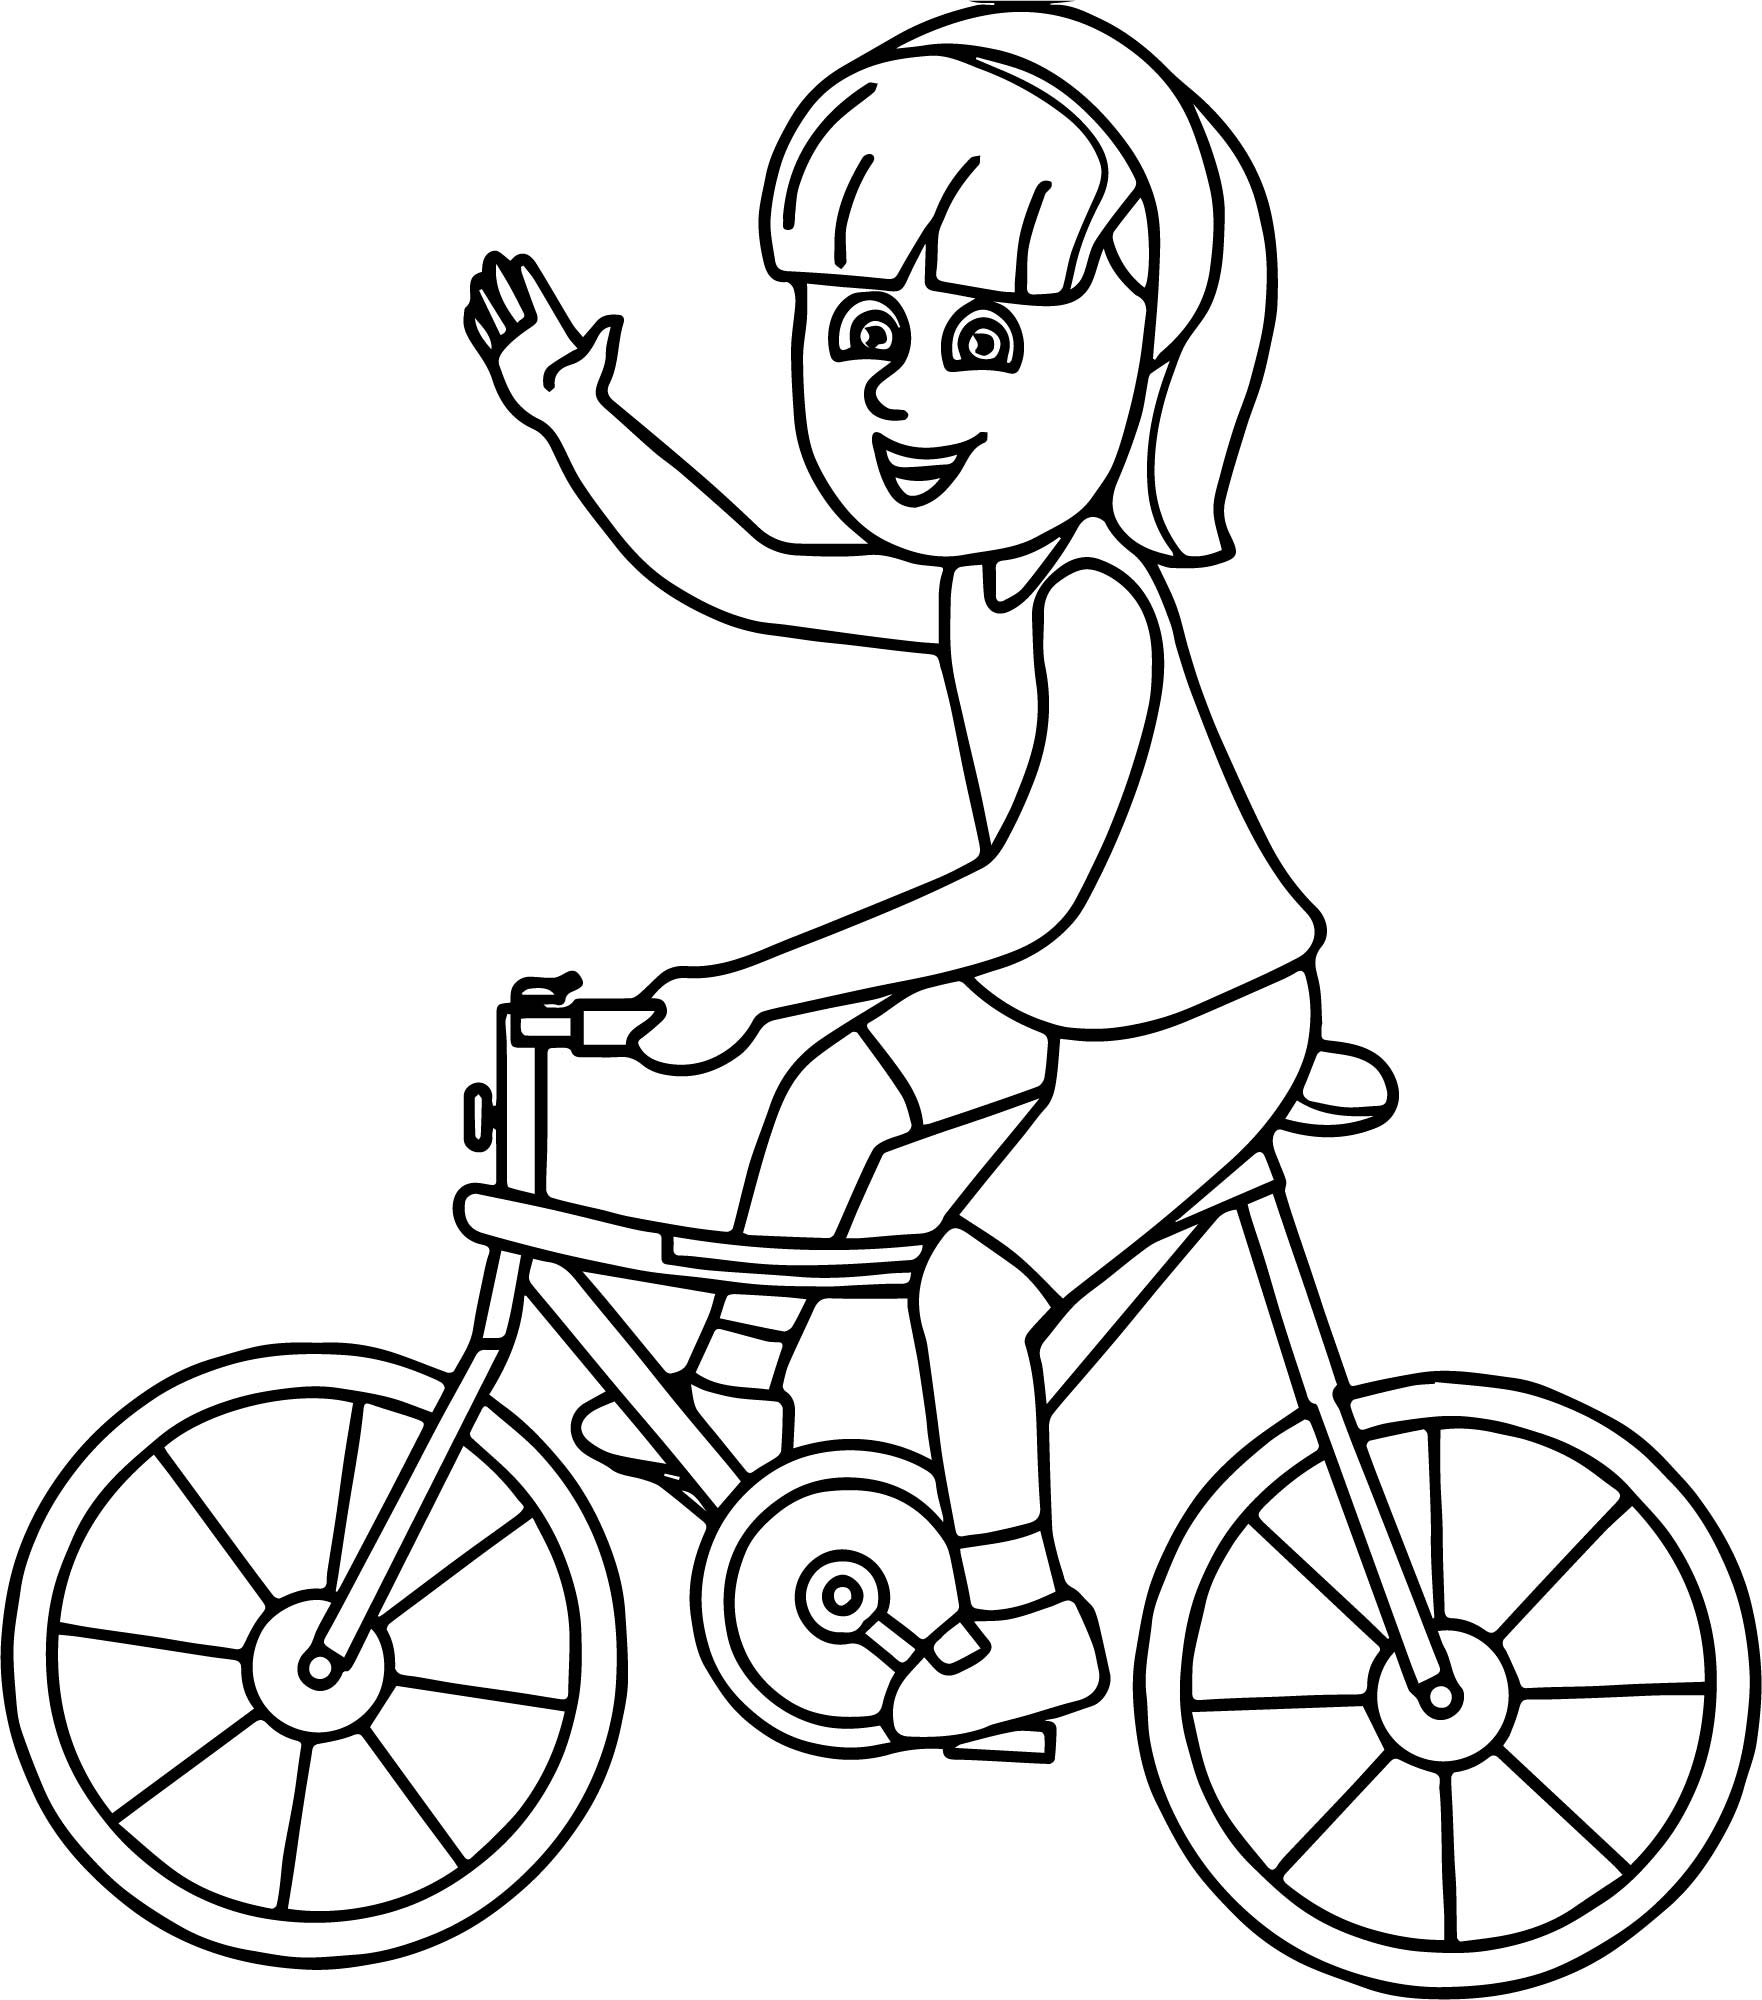 1762x2000 Luxury Bike Coloring Pages Bicycle Magazine For Kids 2